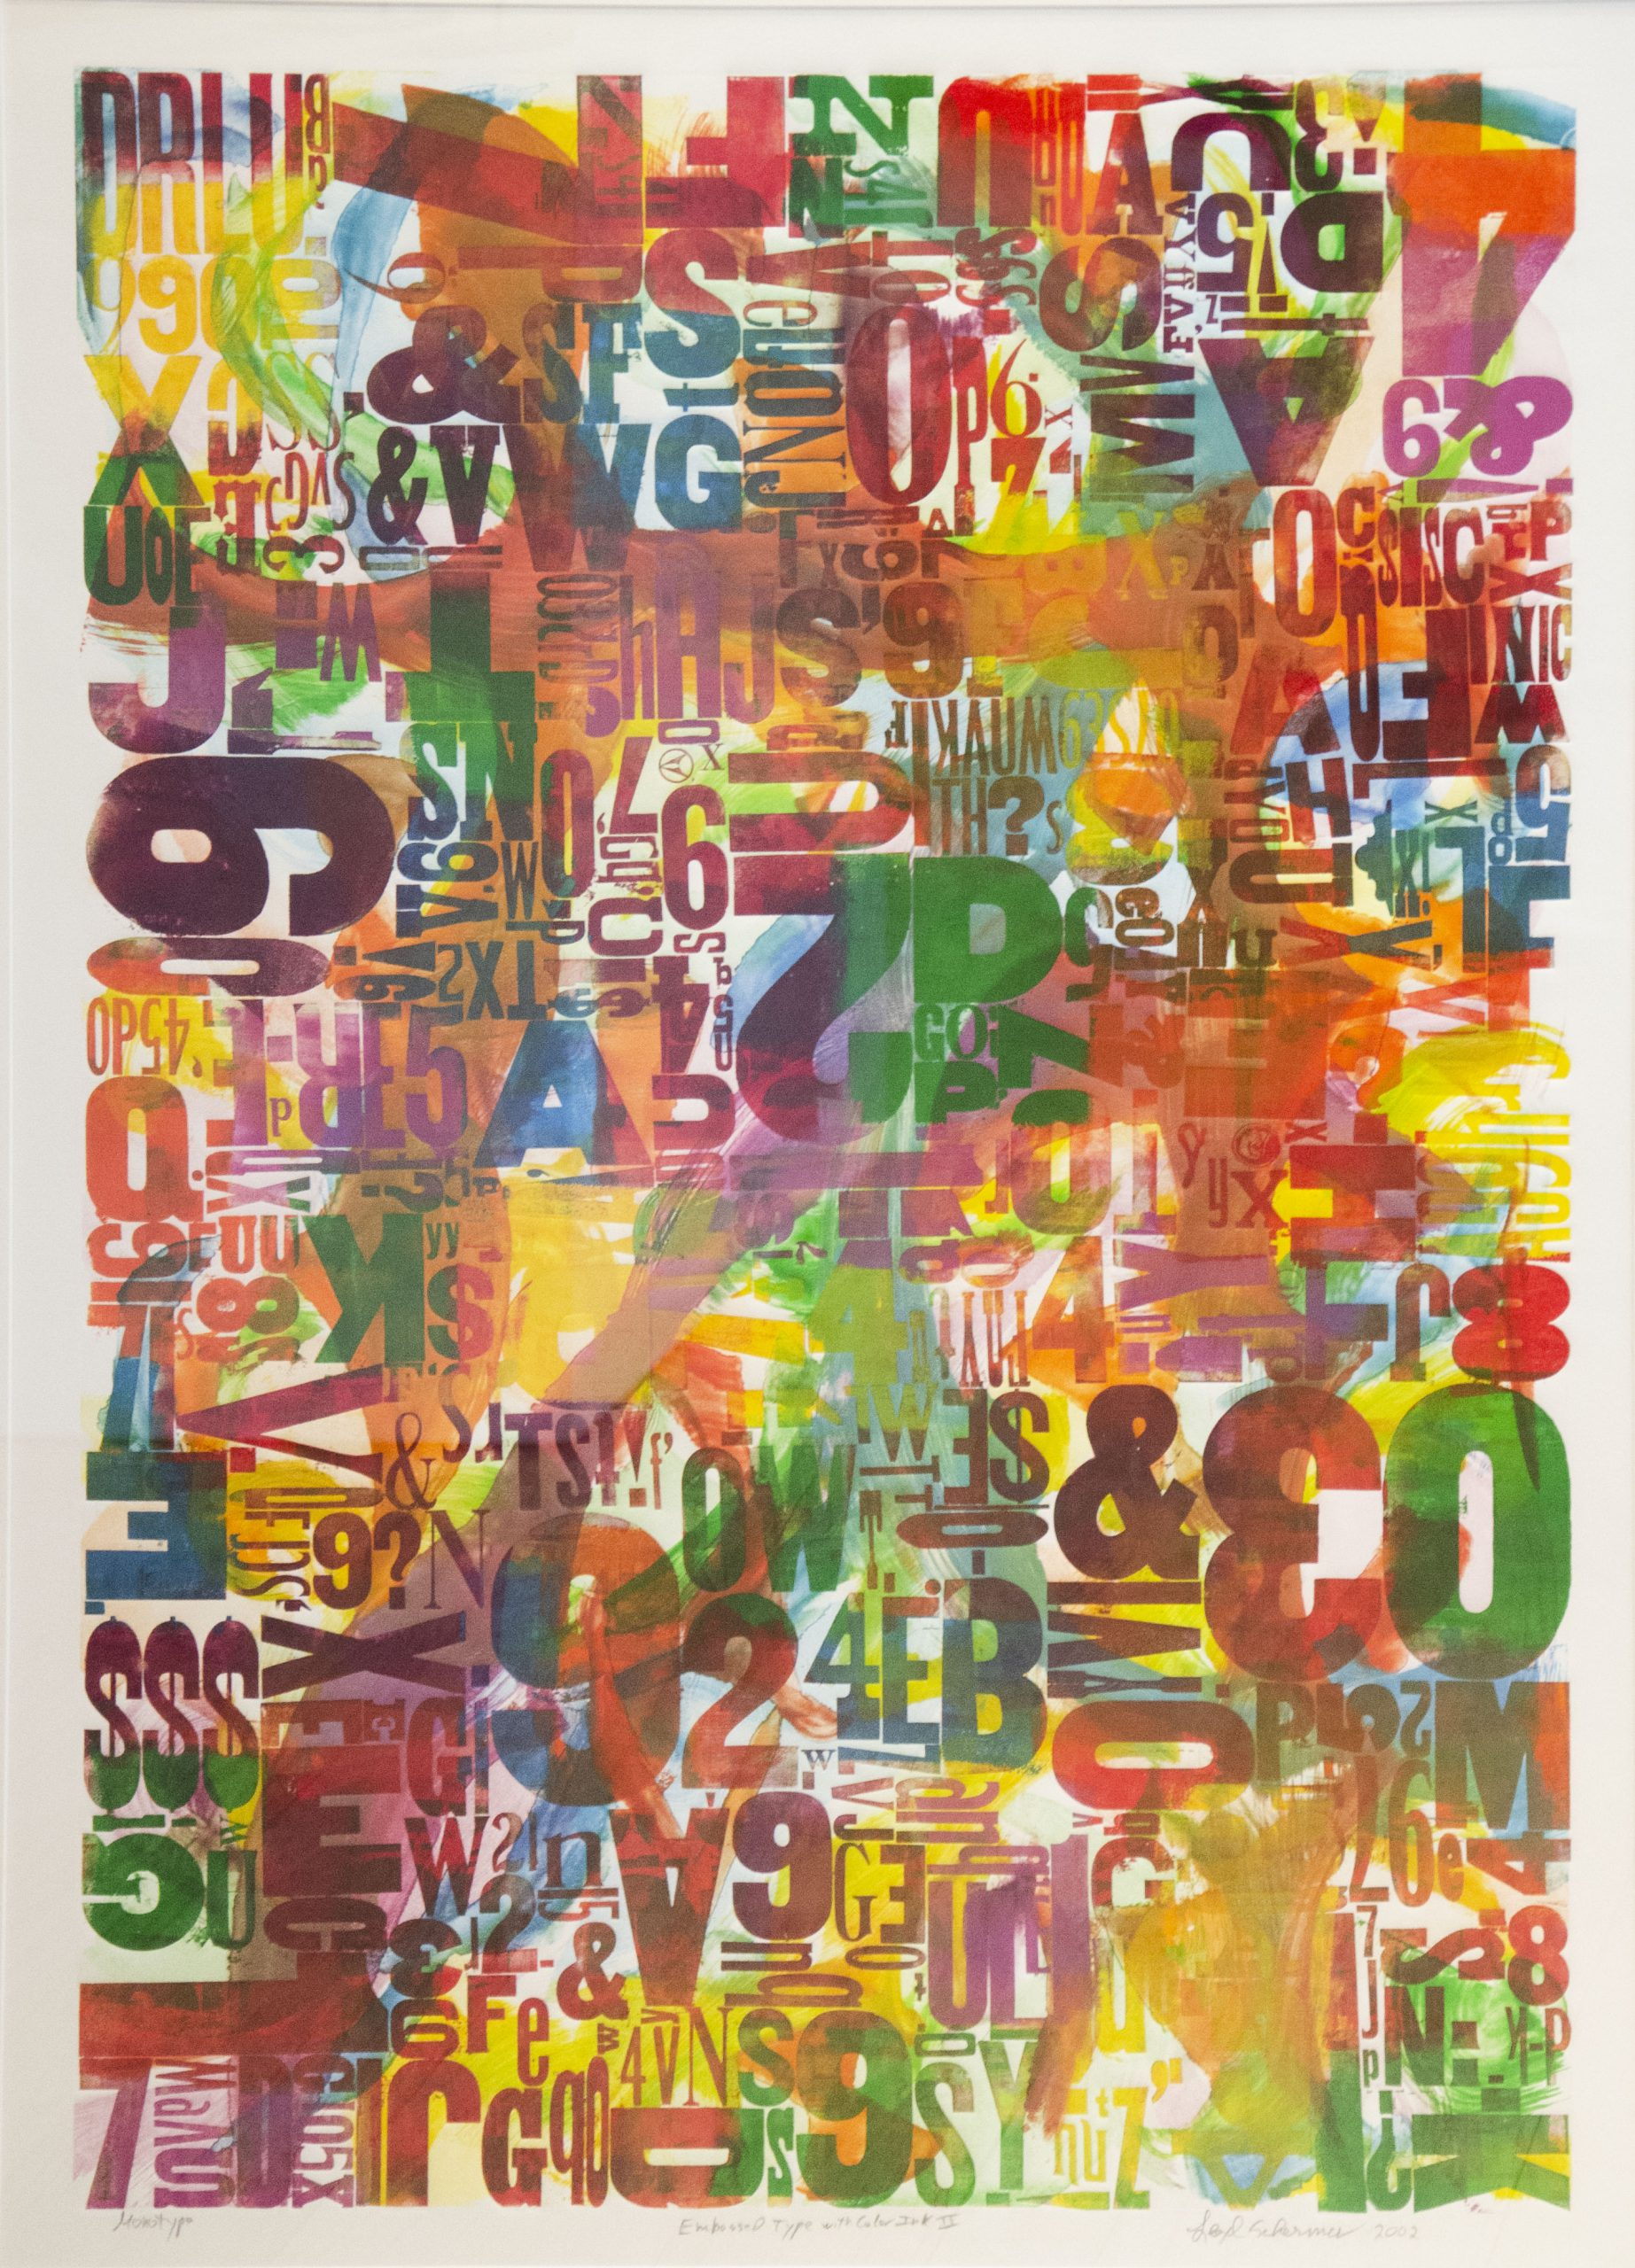 Lloyd  Schermer  - Embossed Type with Color Ink II